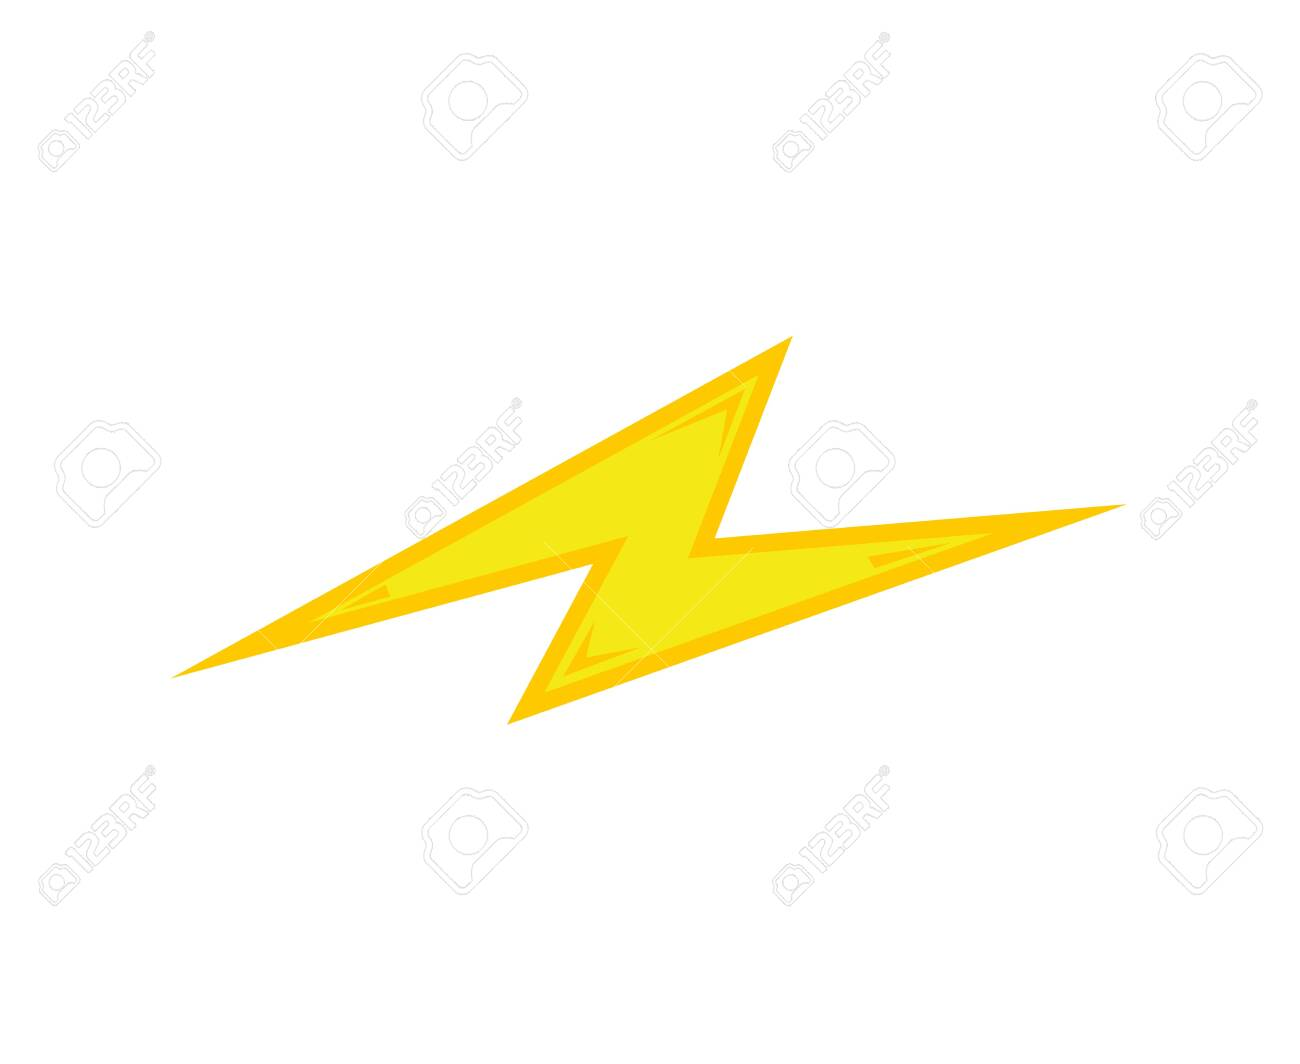 Yellow Bolt Flash Icon With Effects Isolated On White Background Royalty Free Cliparts Vectors And Stock Illustration Image 141675455